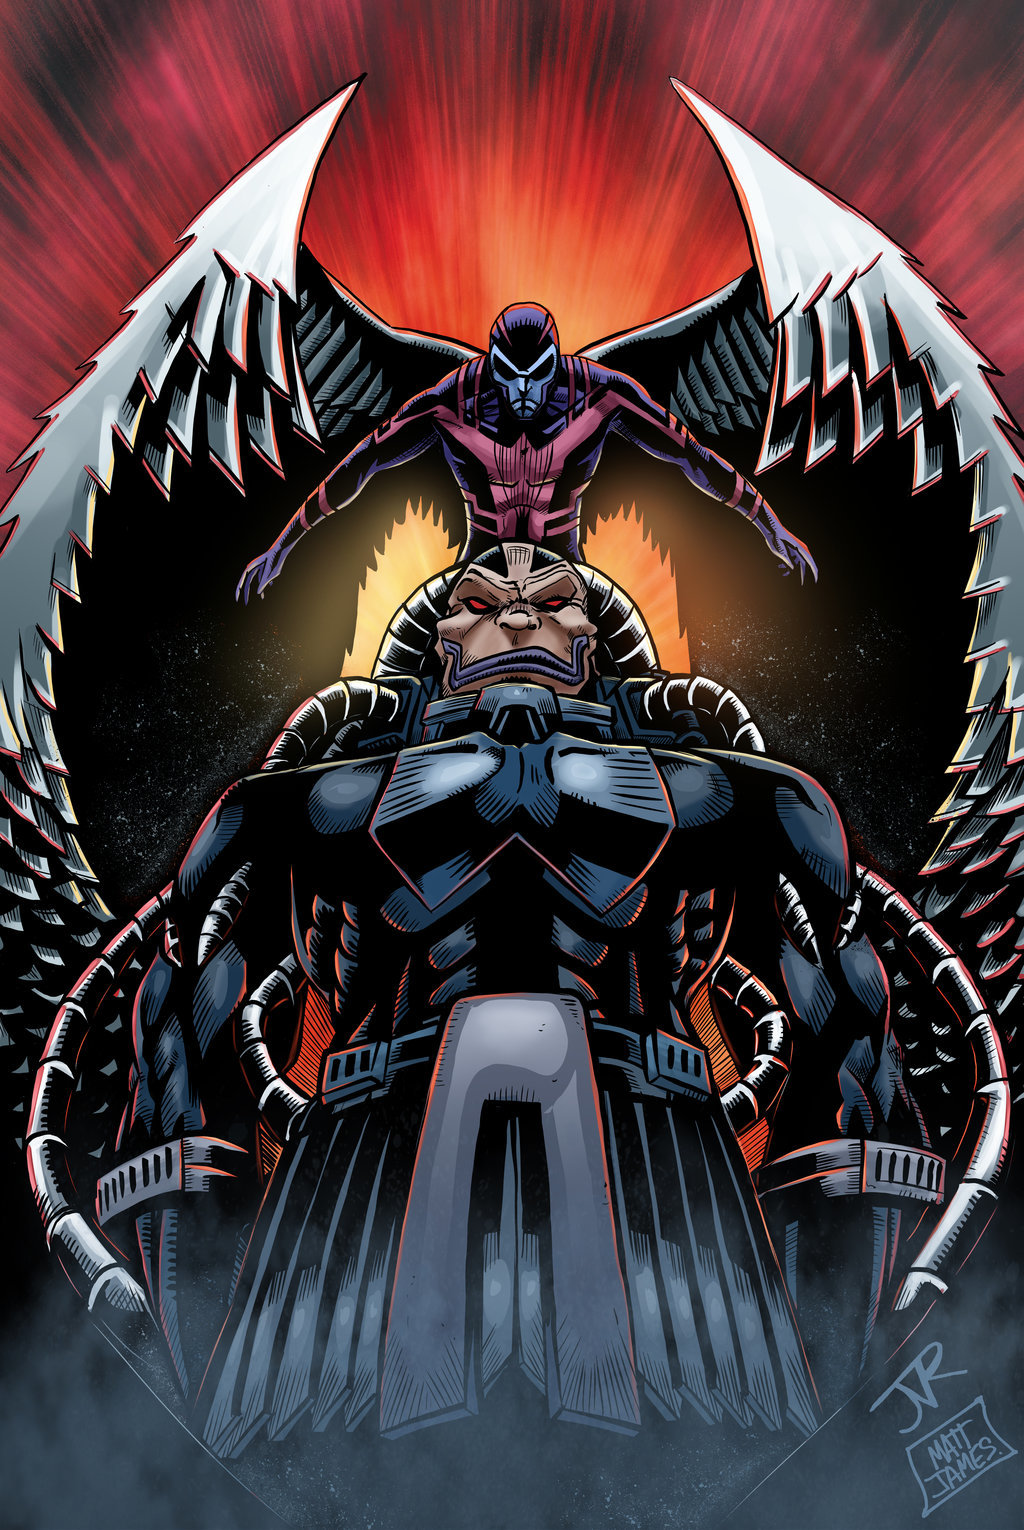 Matt james apocalypse and archangel by mattjamescomicarts d88z2gt